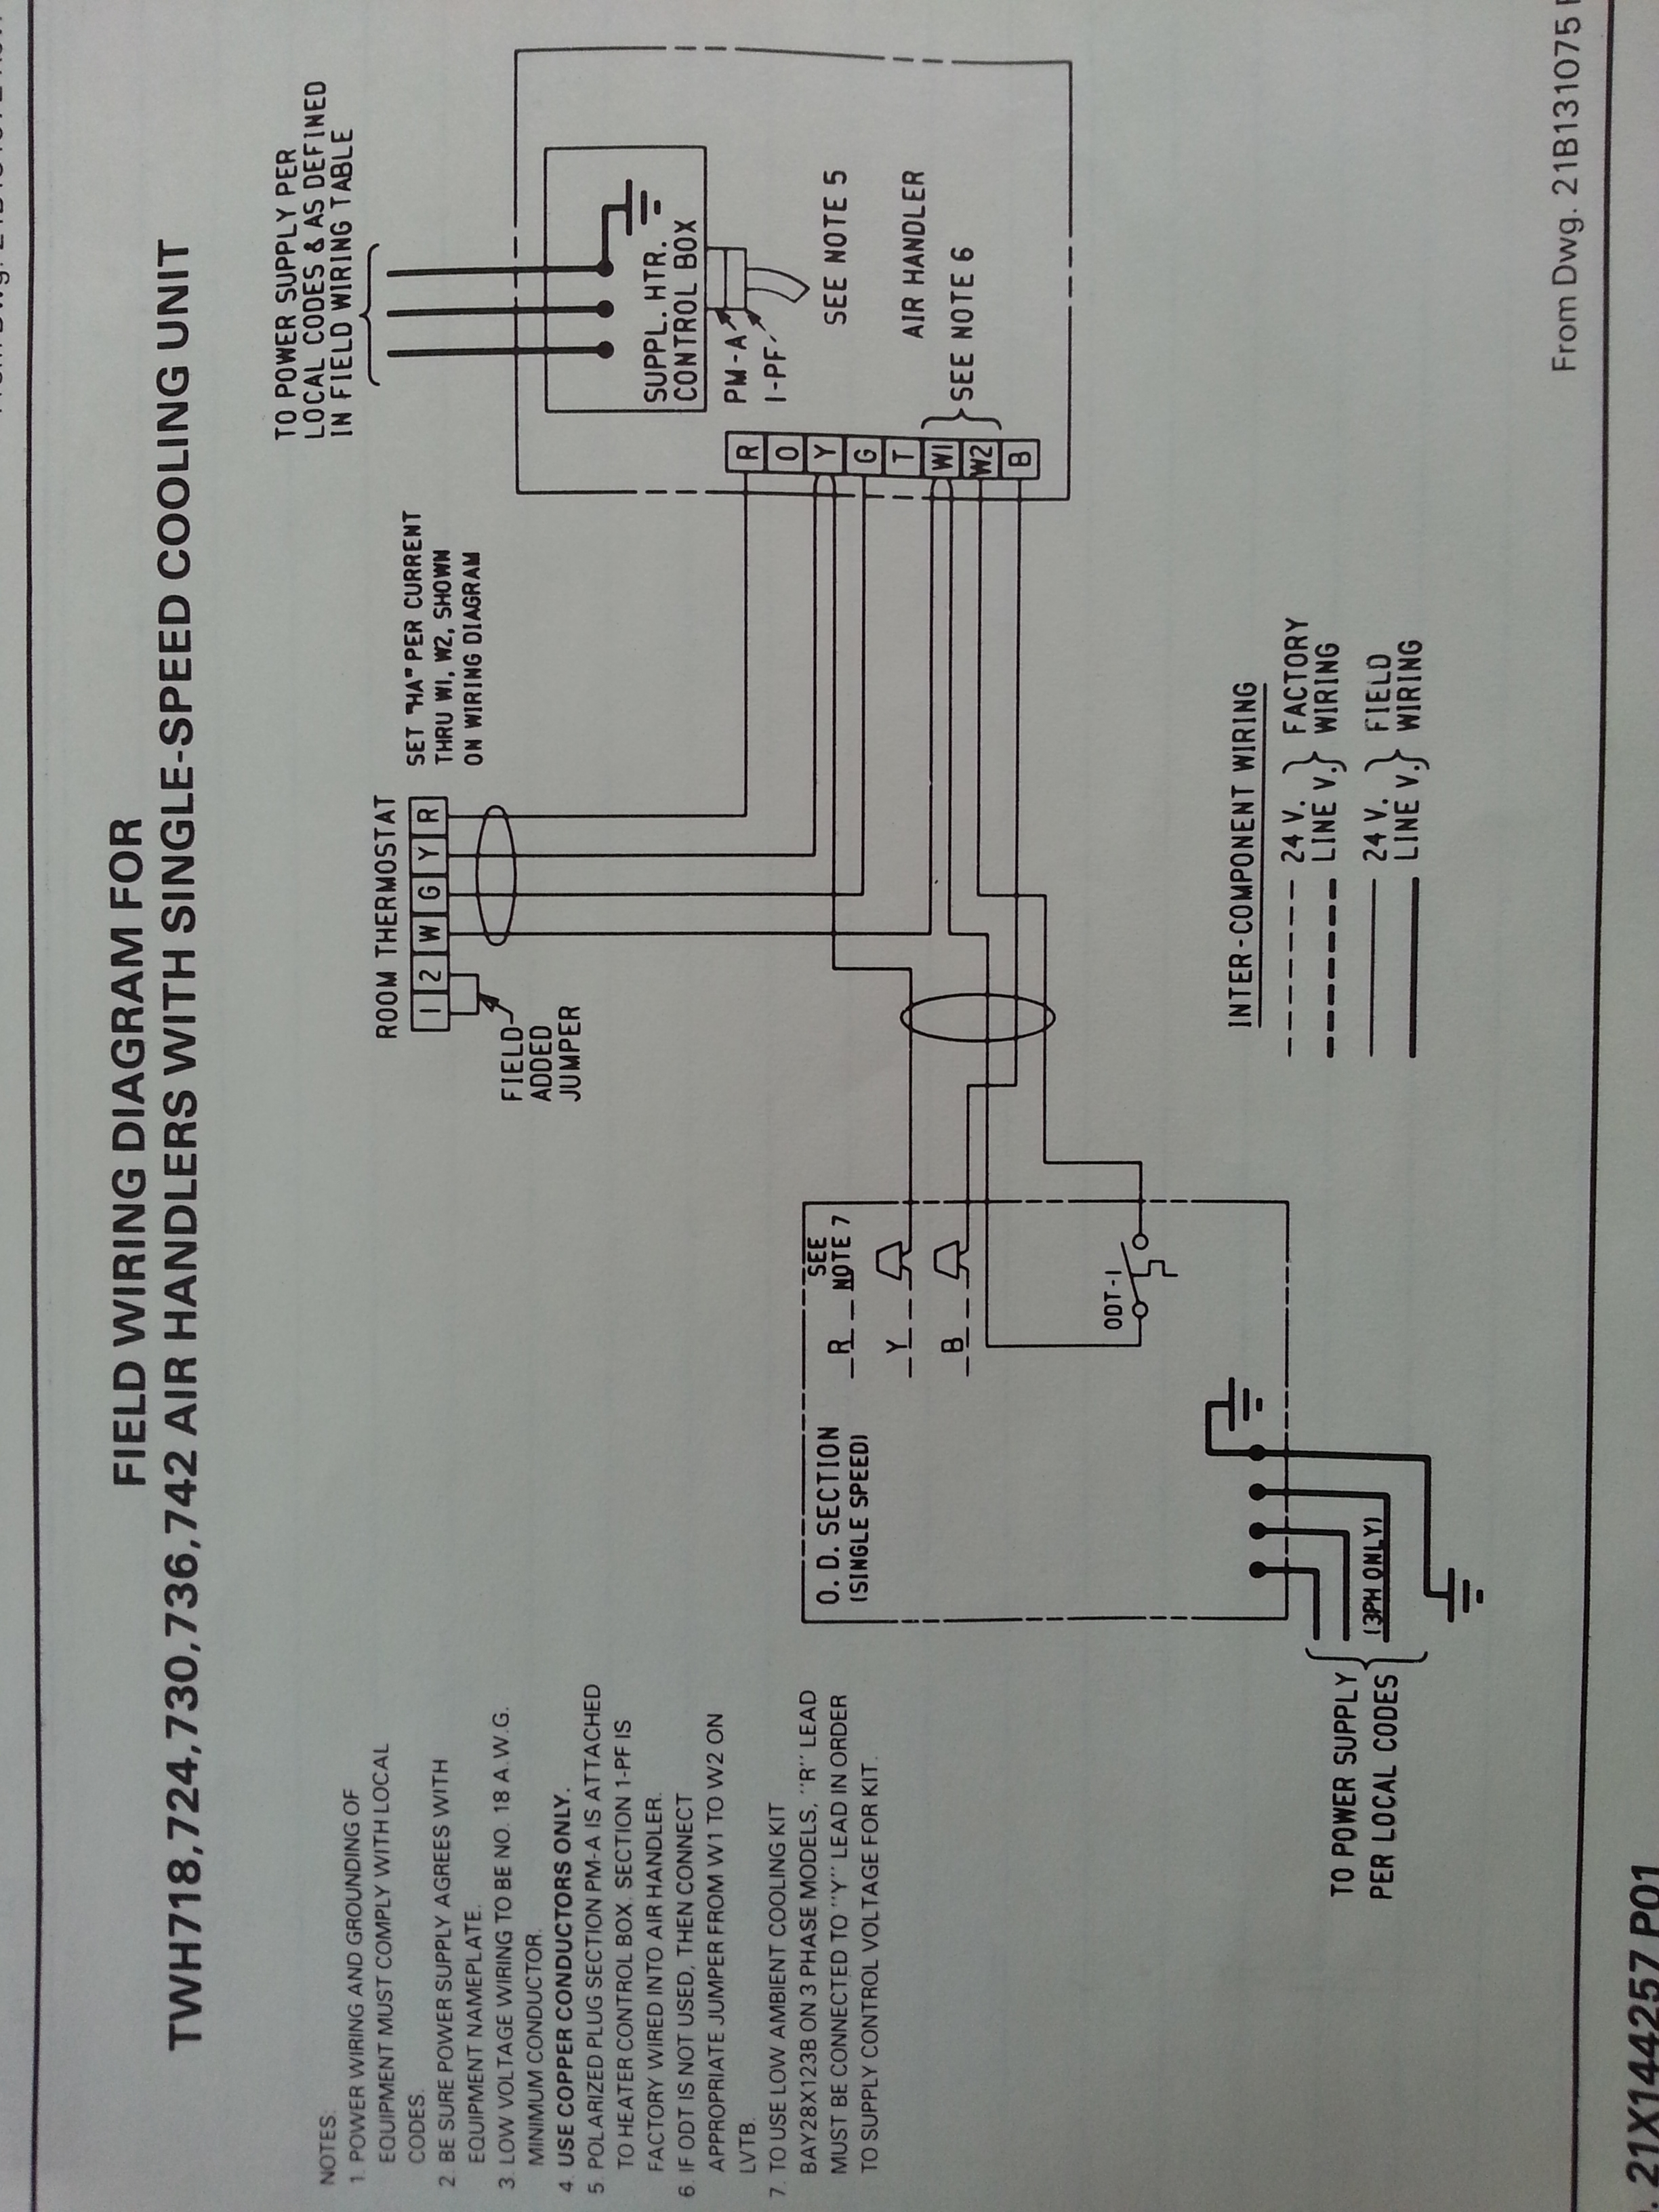 Trane XL1200 Repair — Heating Help: The Wall | Hvac Wiring Diagram For Trane 1200 Xl |  | Heating Help: The Wall